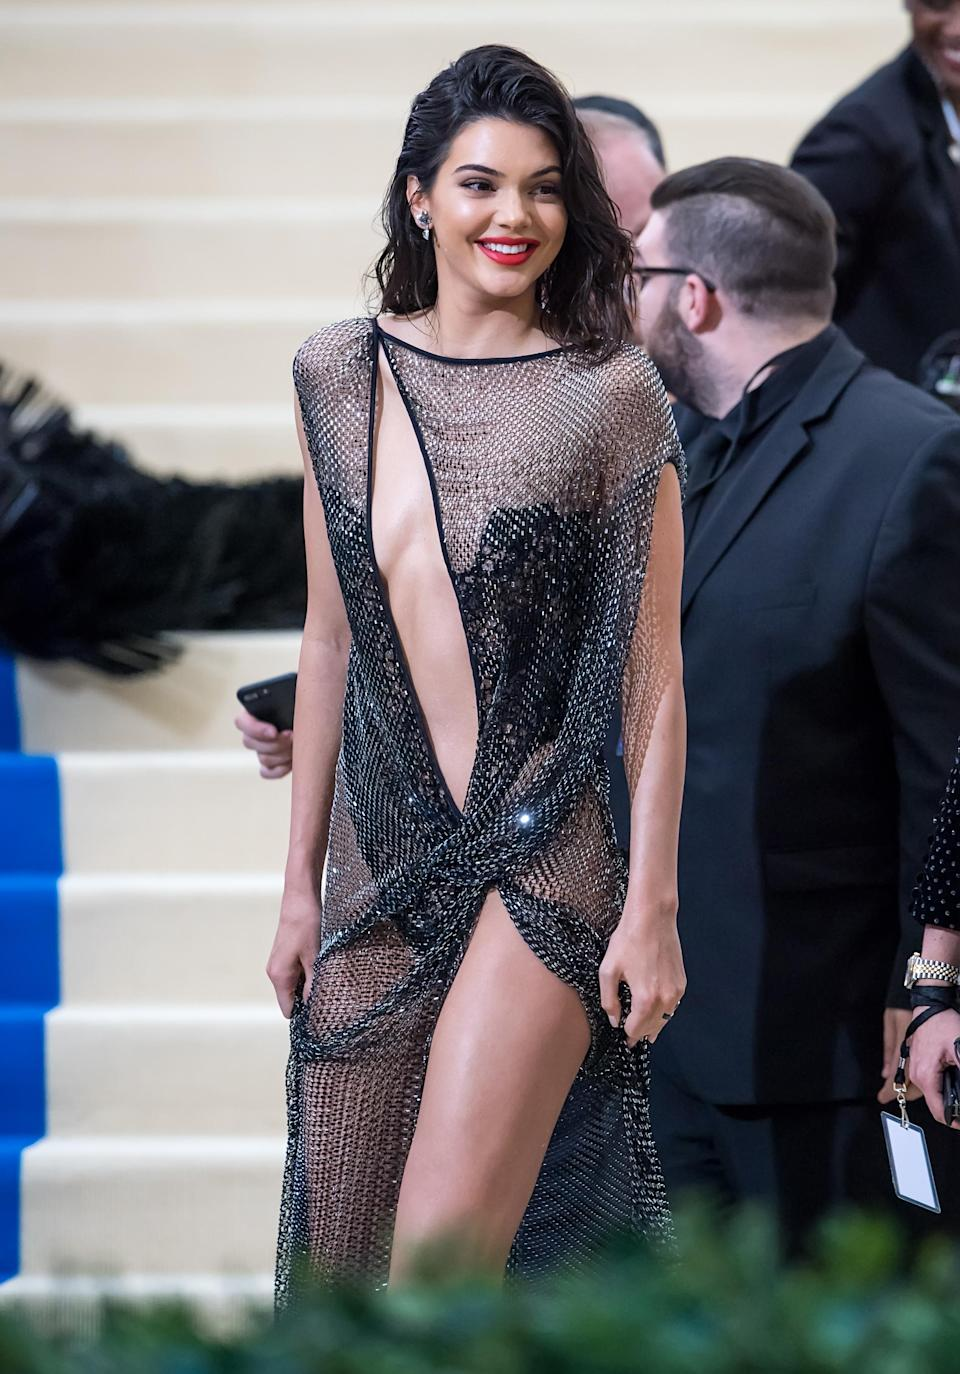 Kendall Jenner stunned at the Met Gala 2017 in a very revealing dress. (Photo: Getty Images)